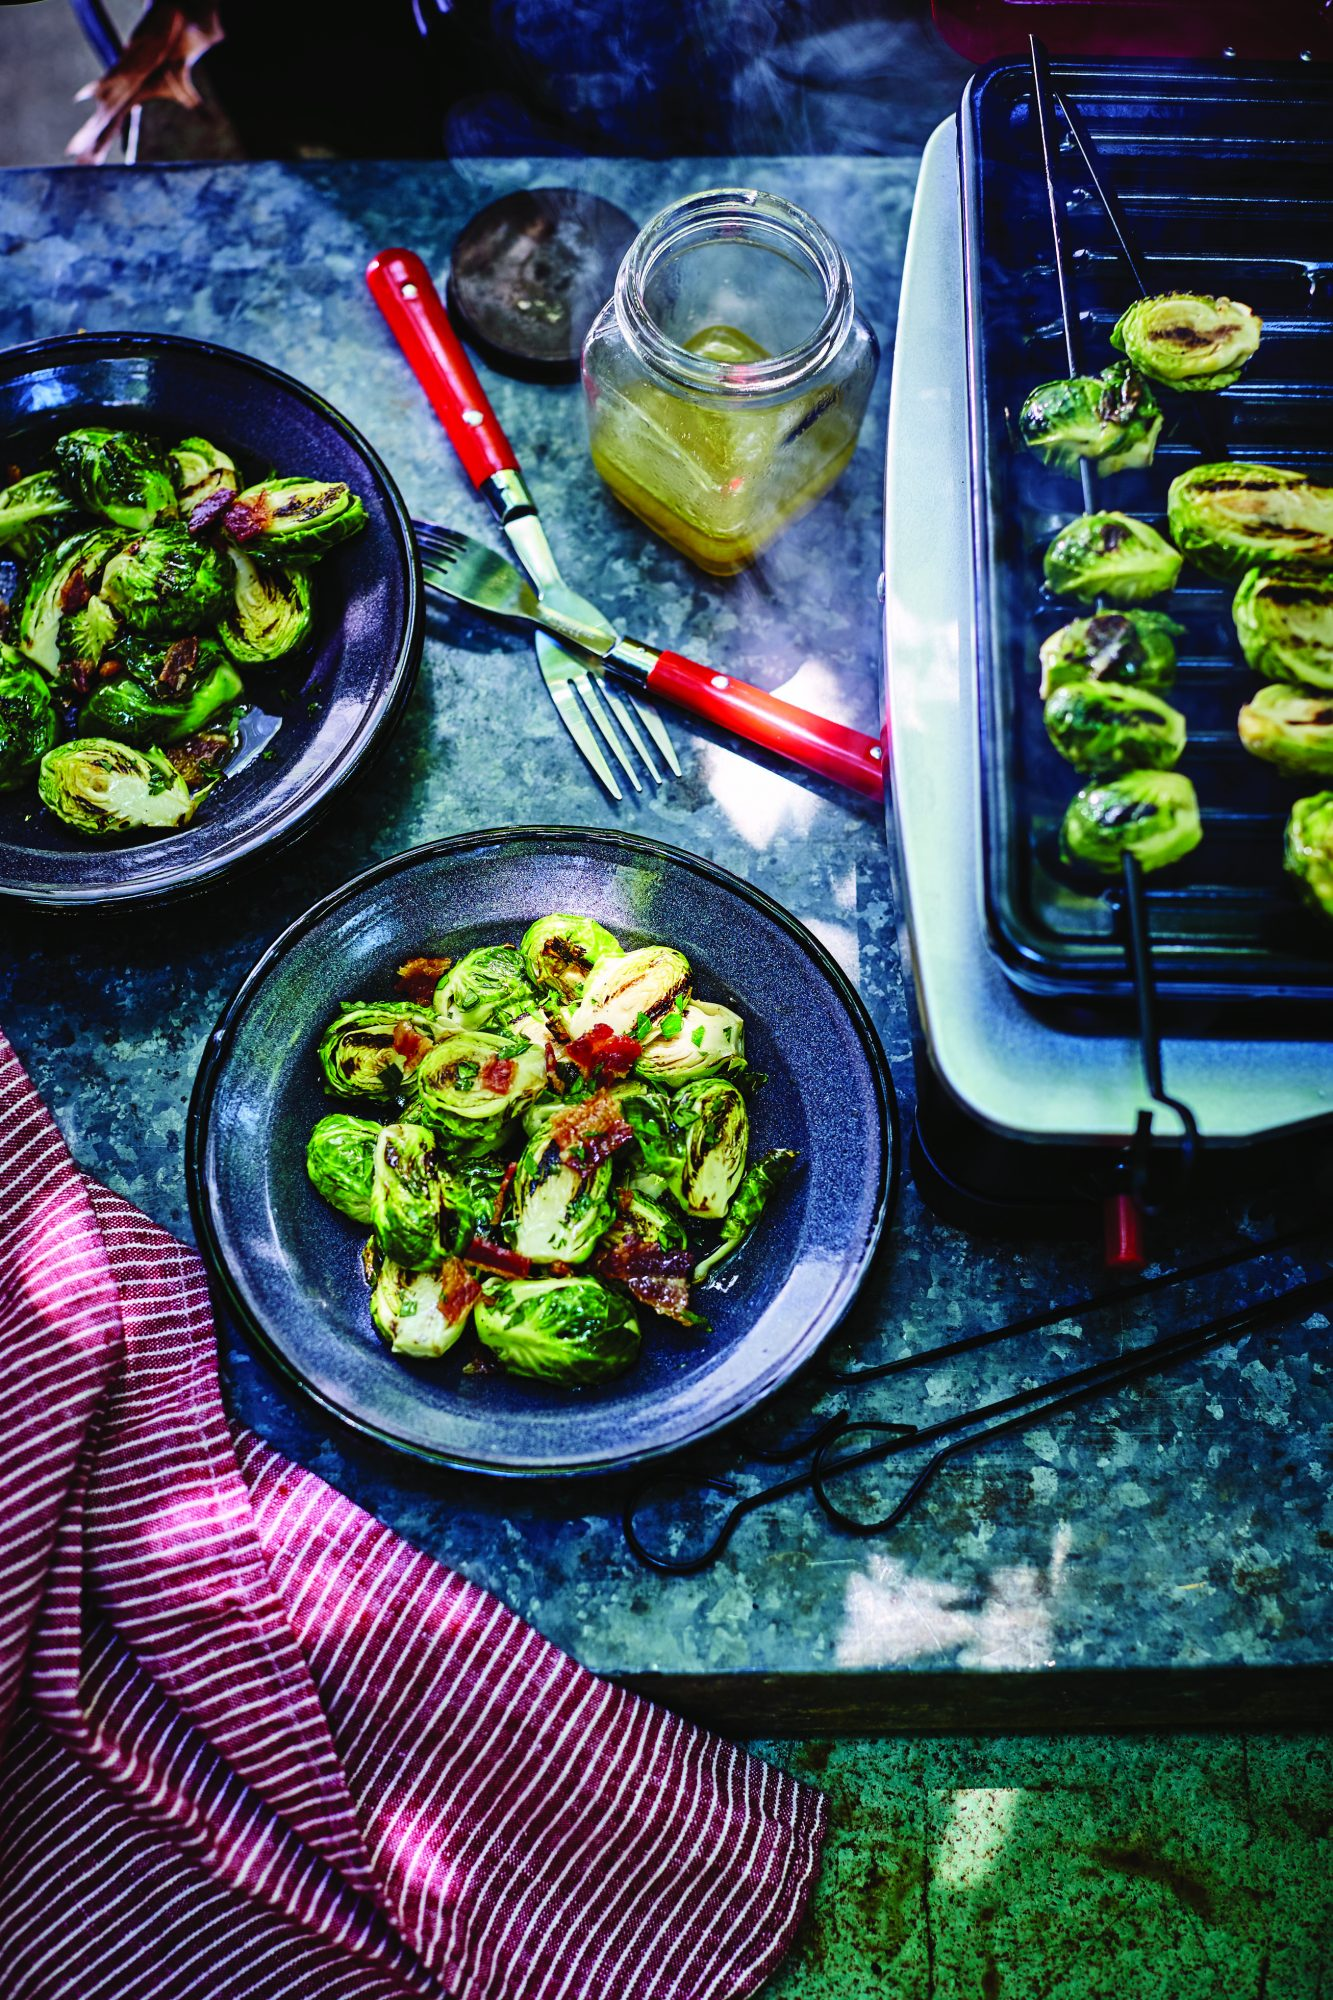 Campfire-Grilled Brussels Sprouts Salad with Bacon and Cider Vinaigrette